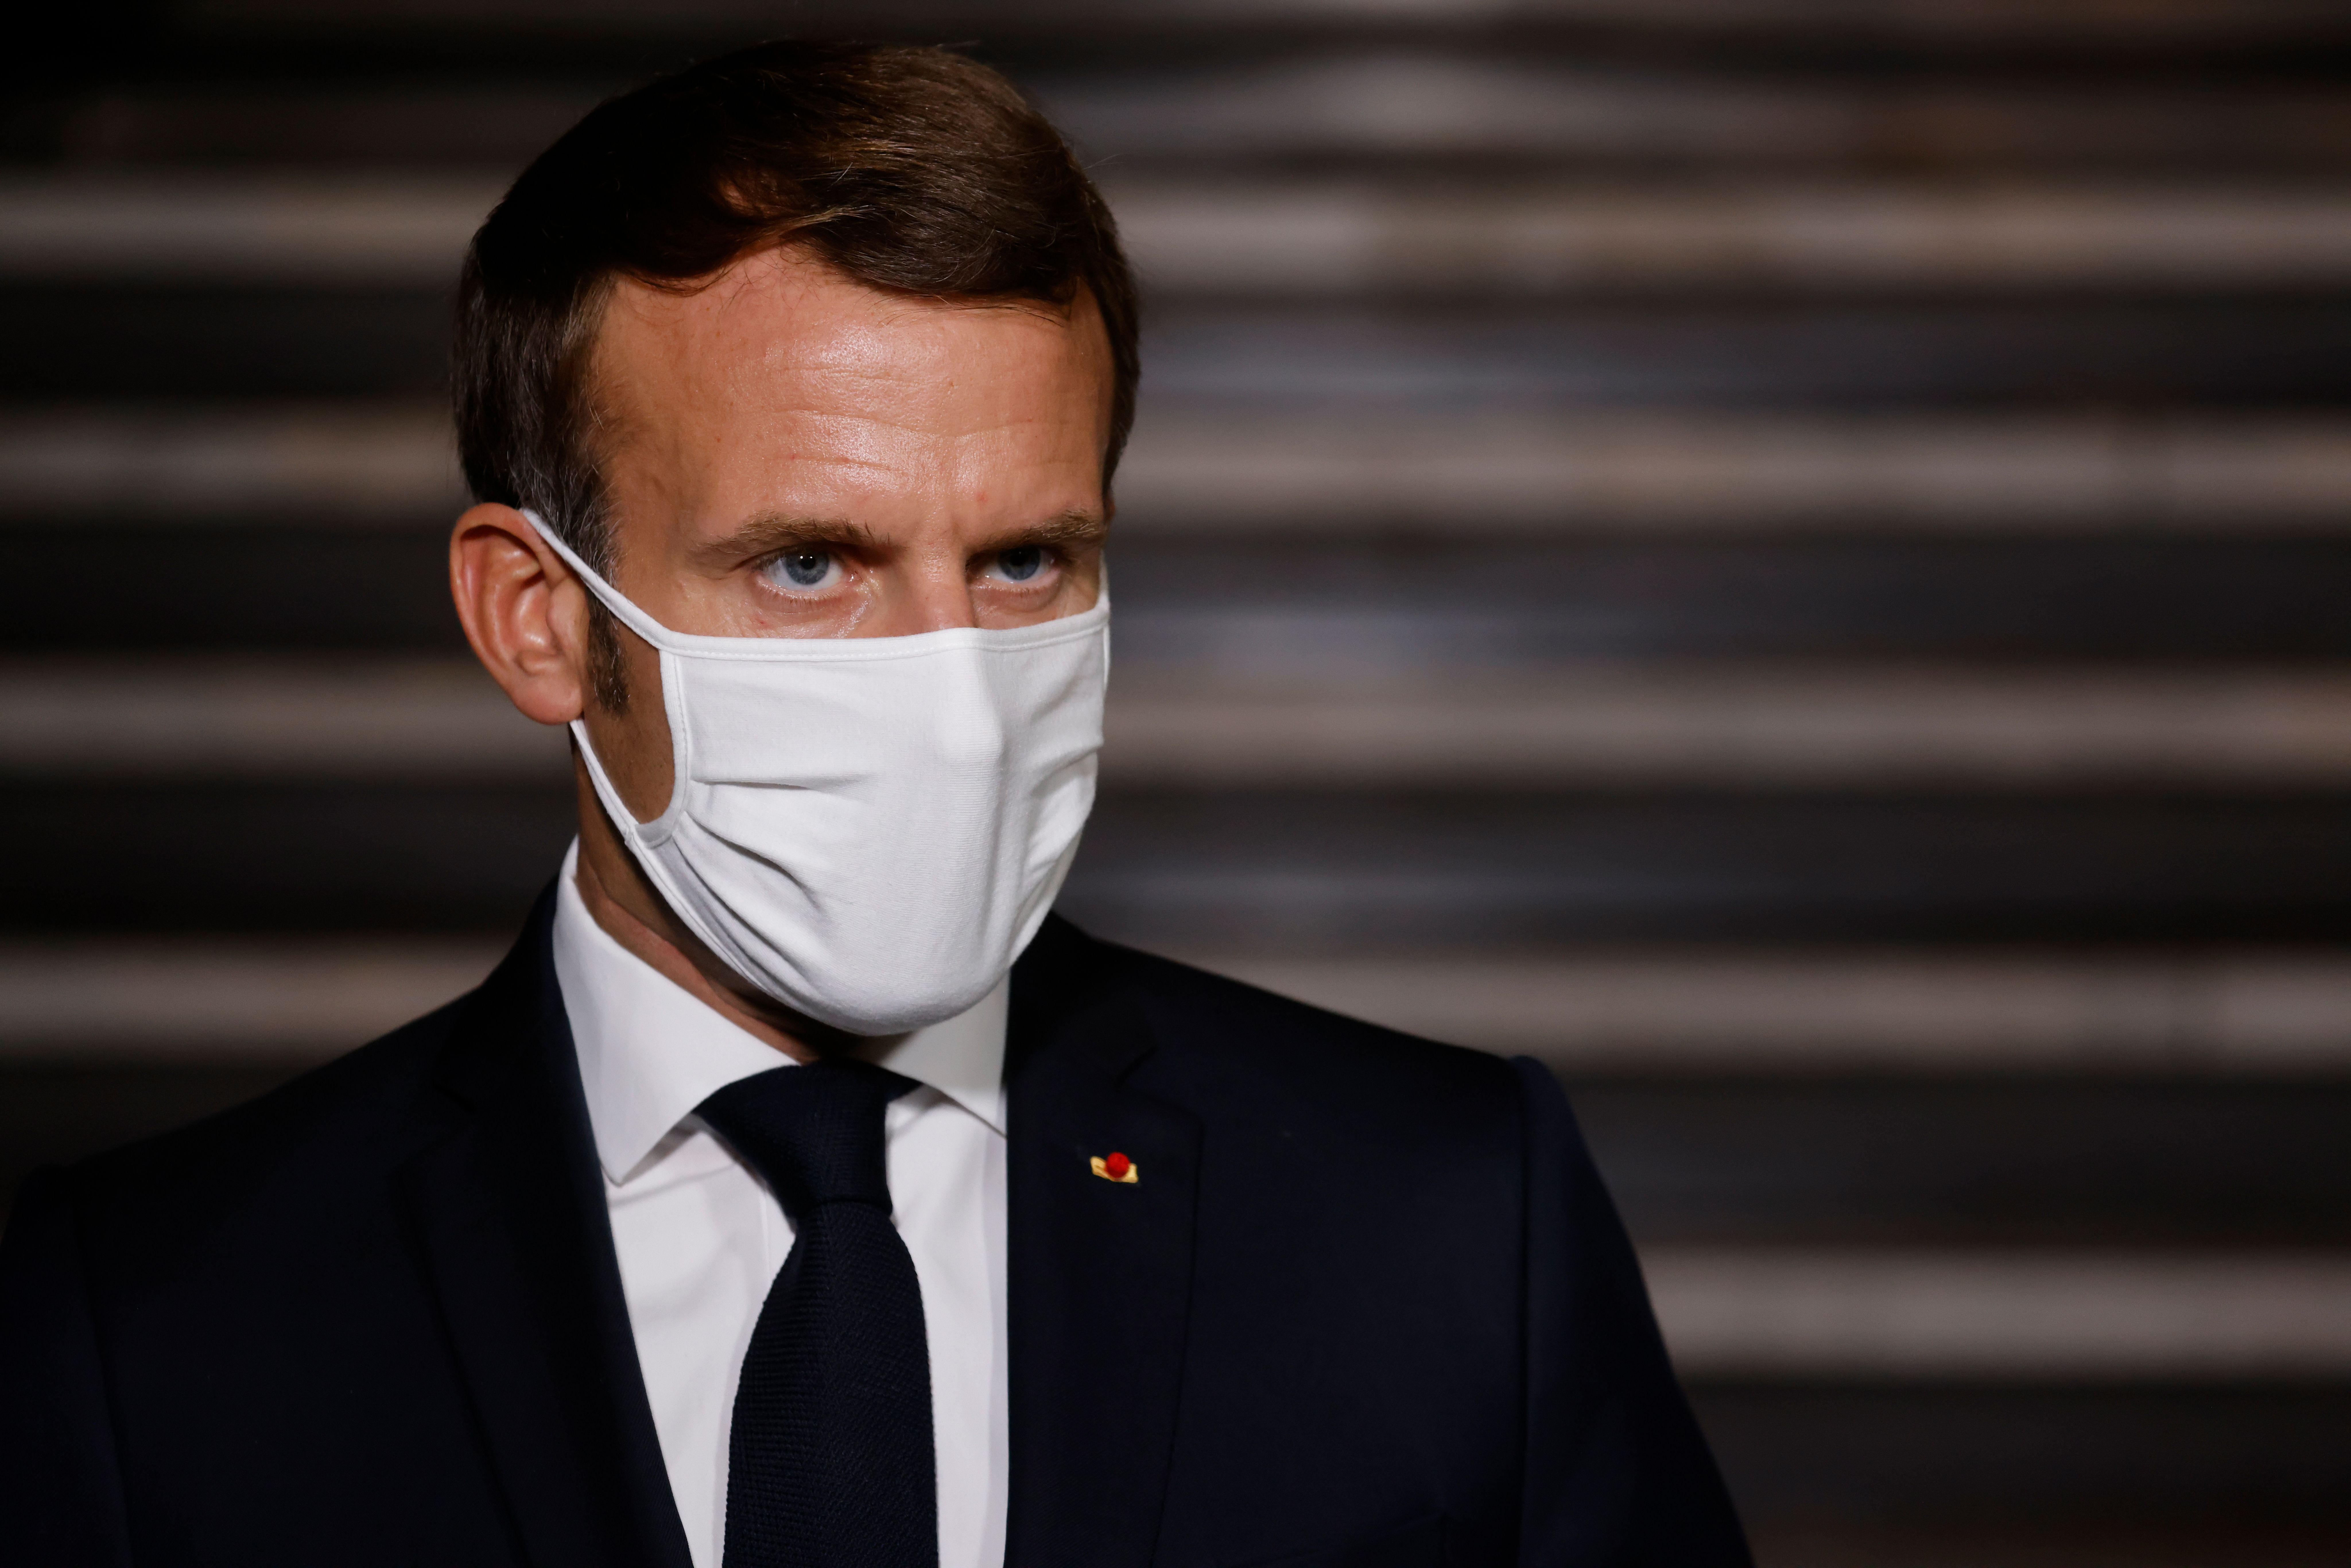 French President Emmanuel Macron on October 20, 2020.